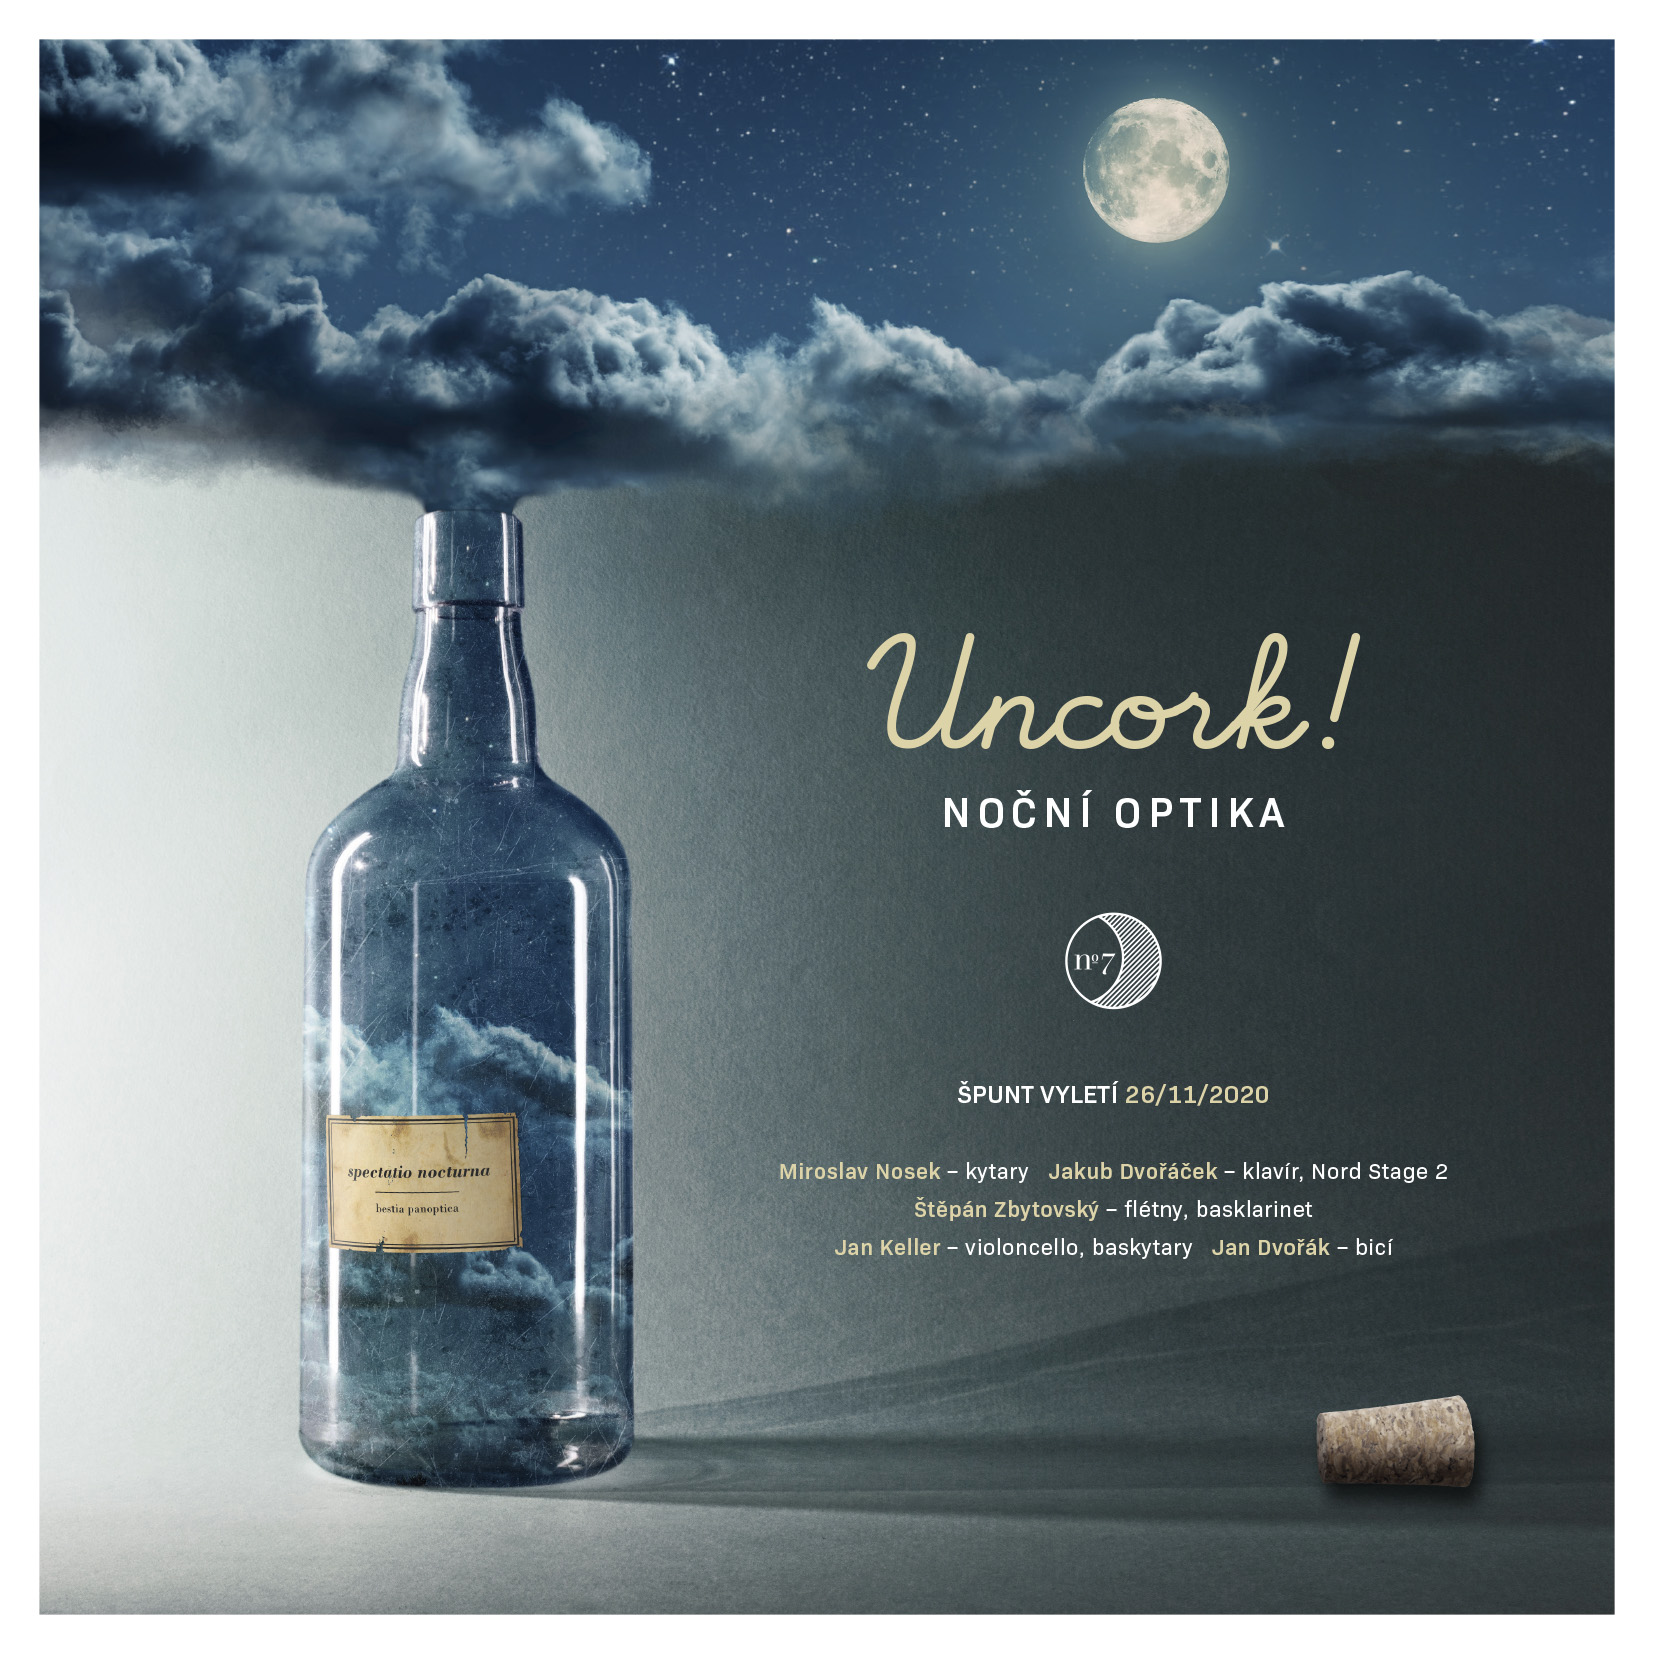 [album/Products_Model_Product/121/NO_Uncork_A3poster.jpg]